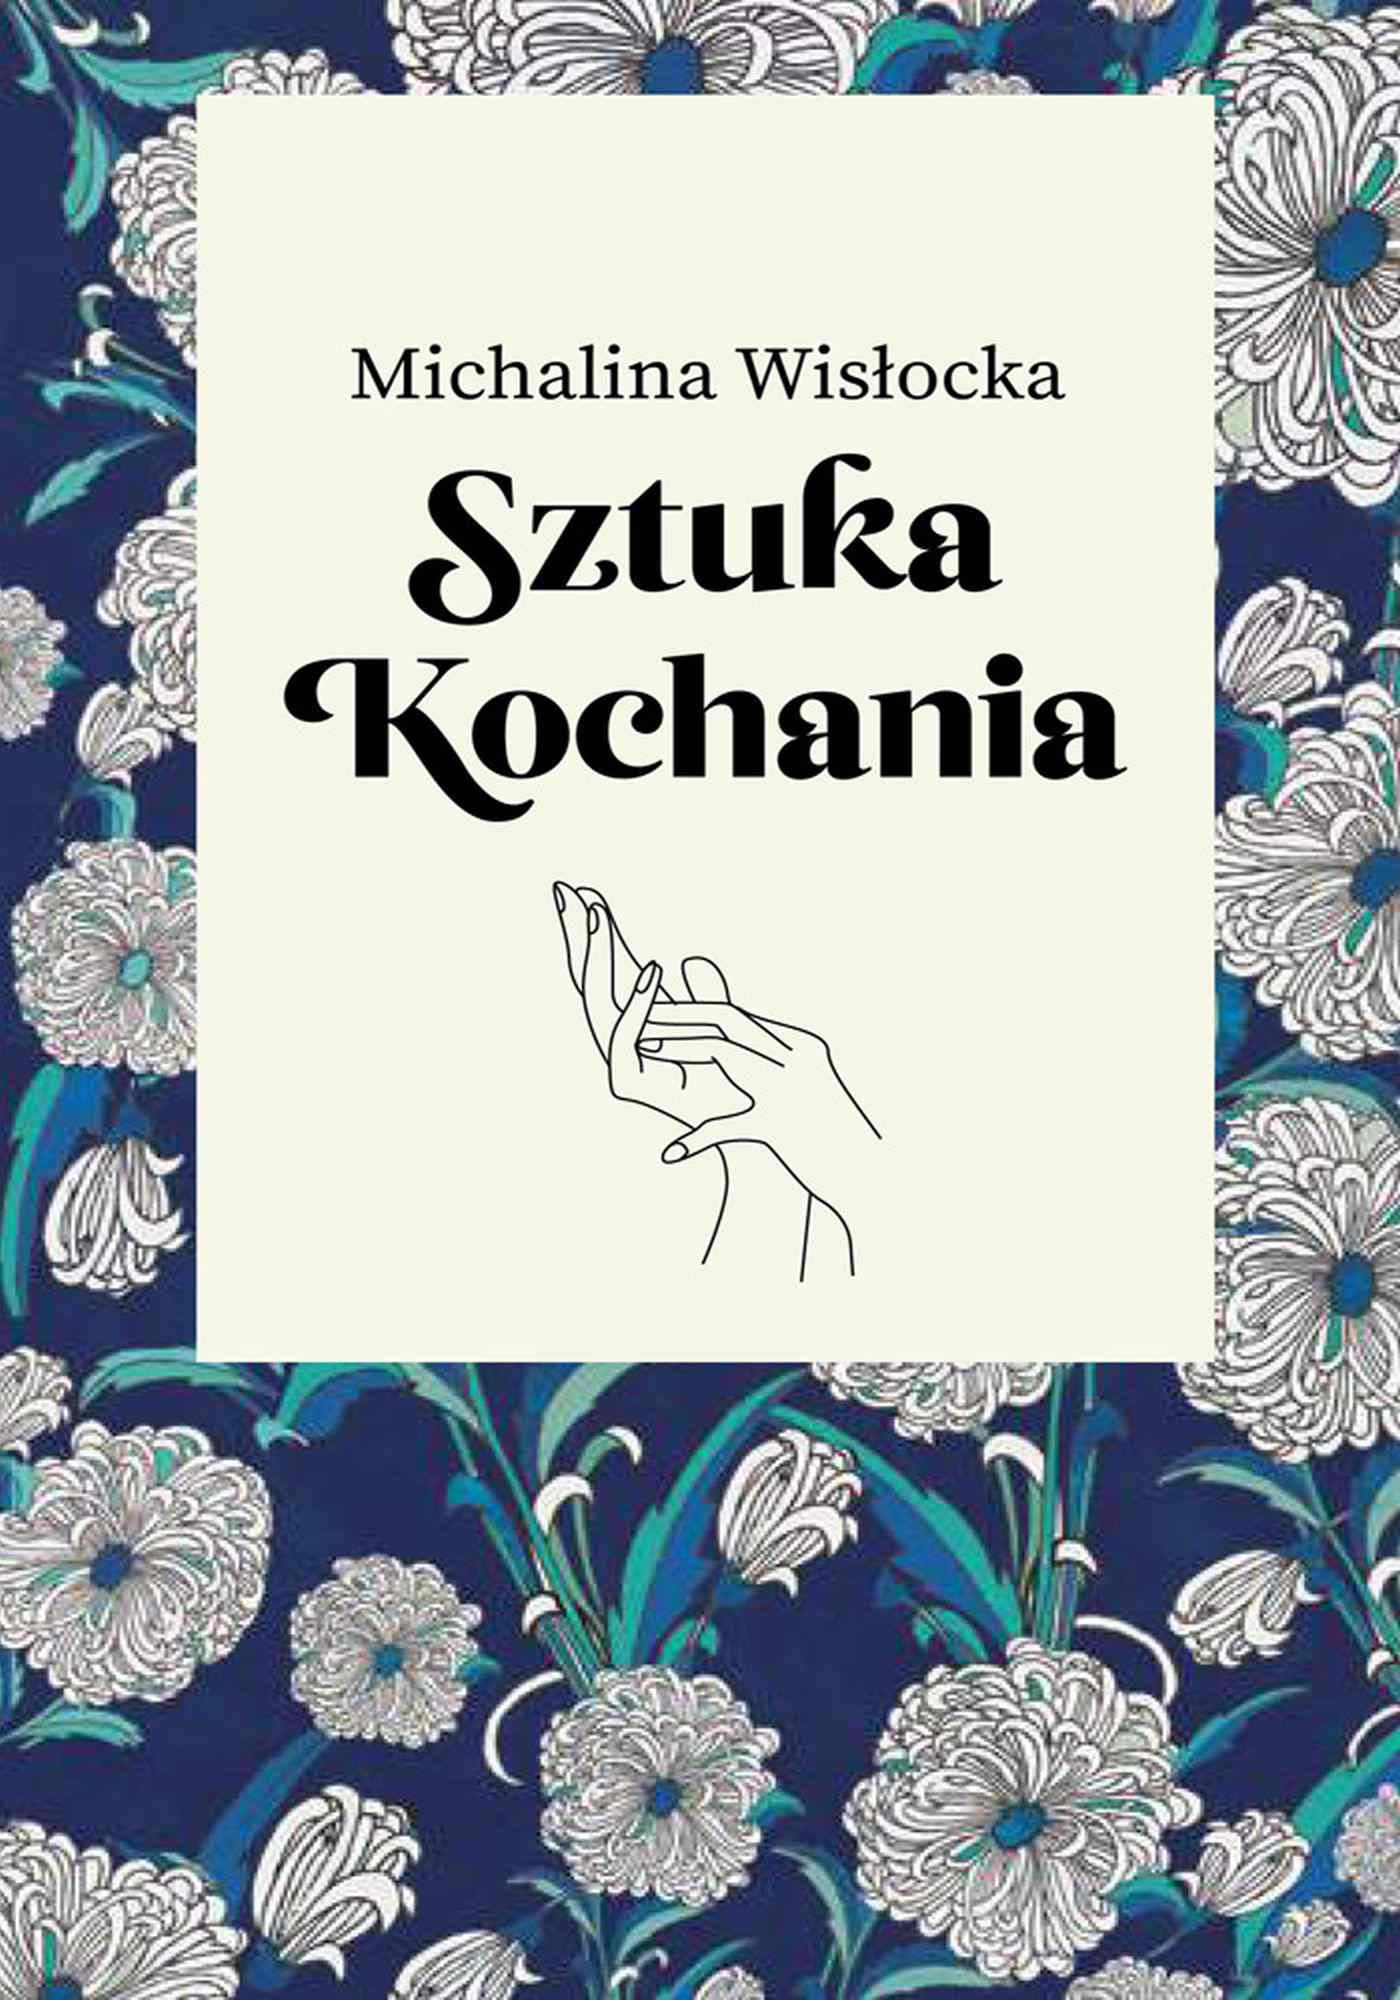 sztuka kochania wisłocka pdf download